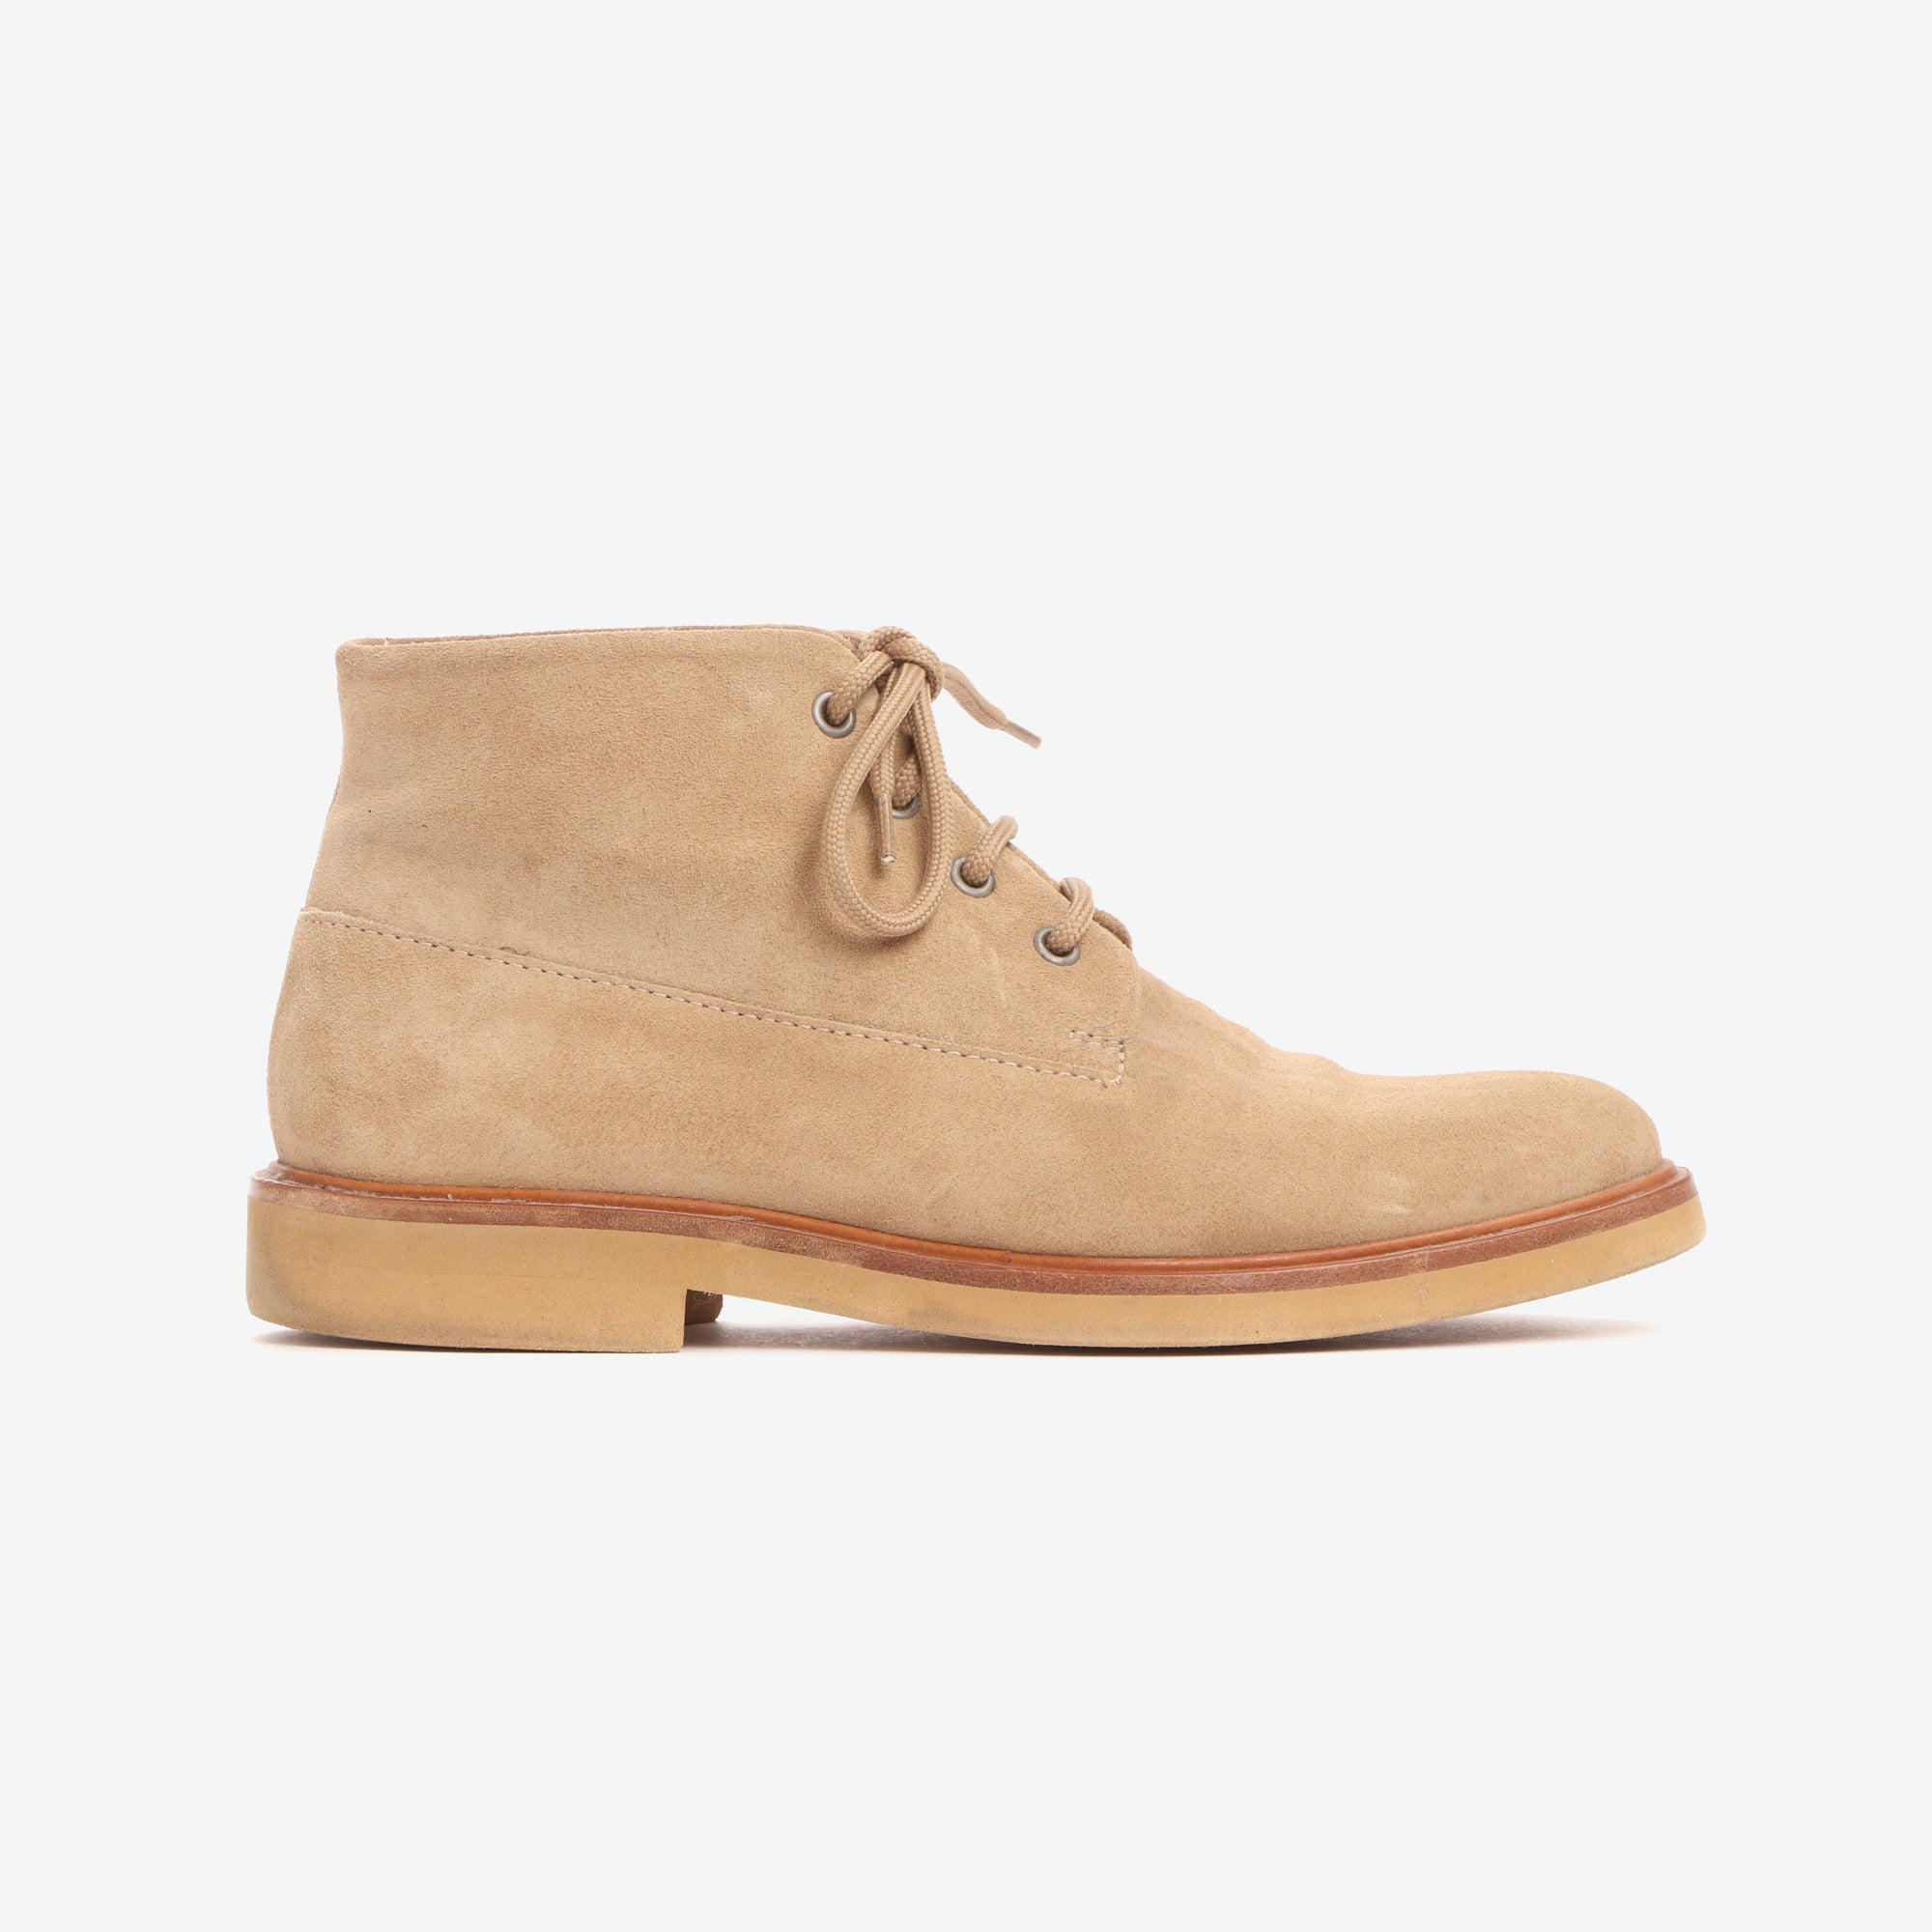 Suede Gaspard Boots